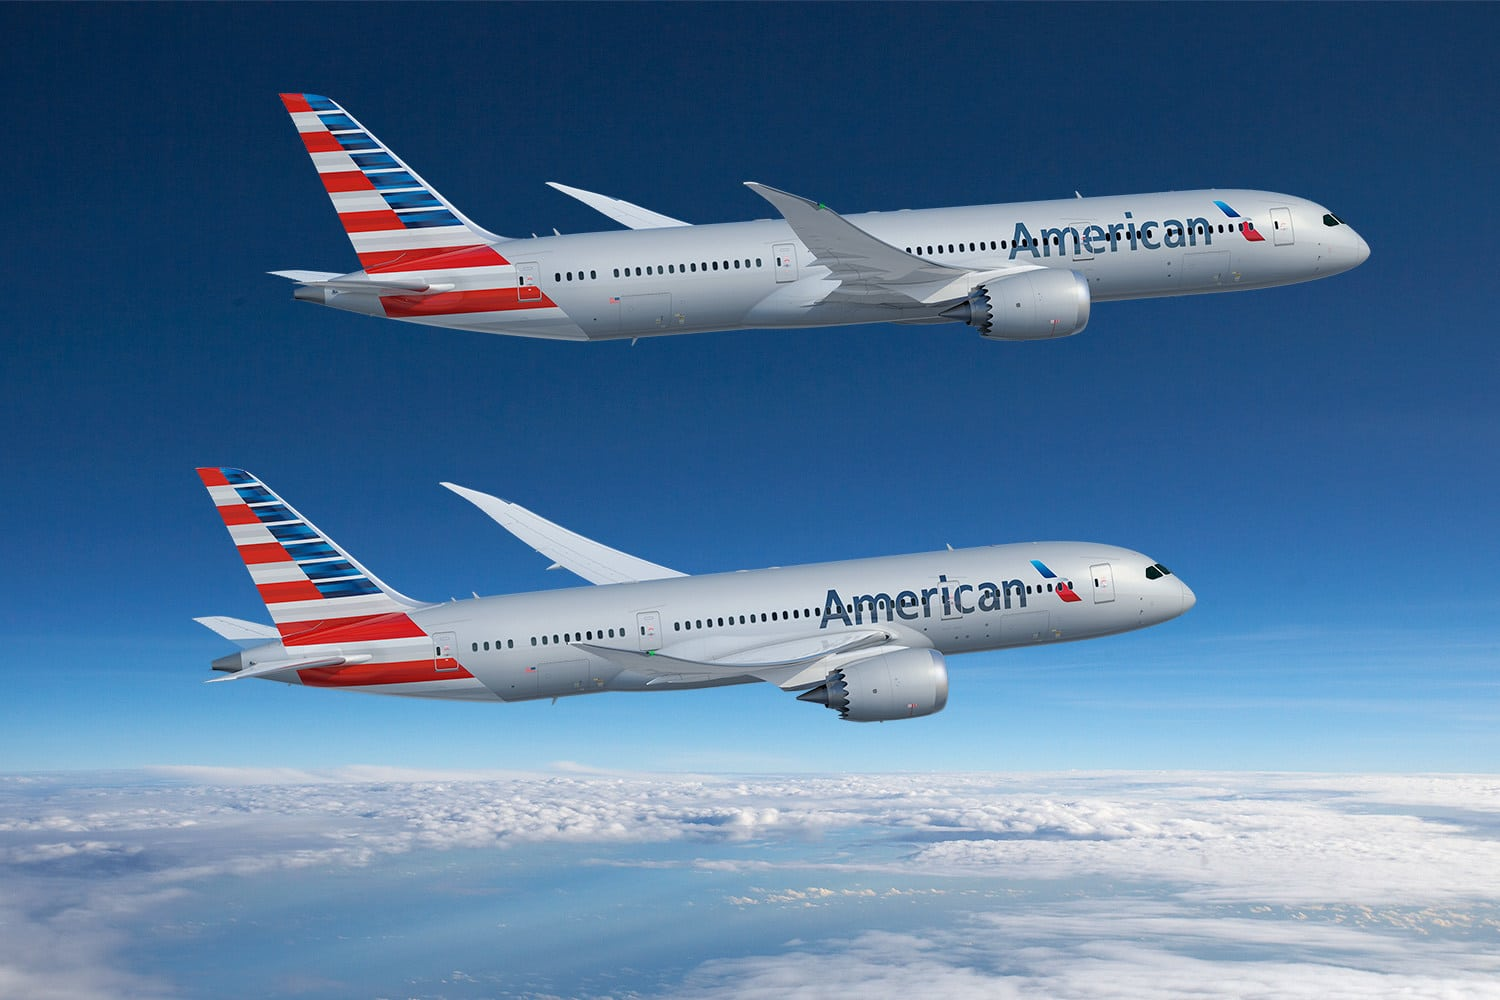 American Airlines, Delta Air Lines and United Airlines to